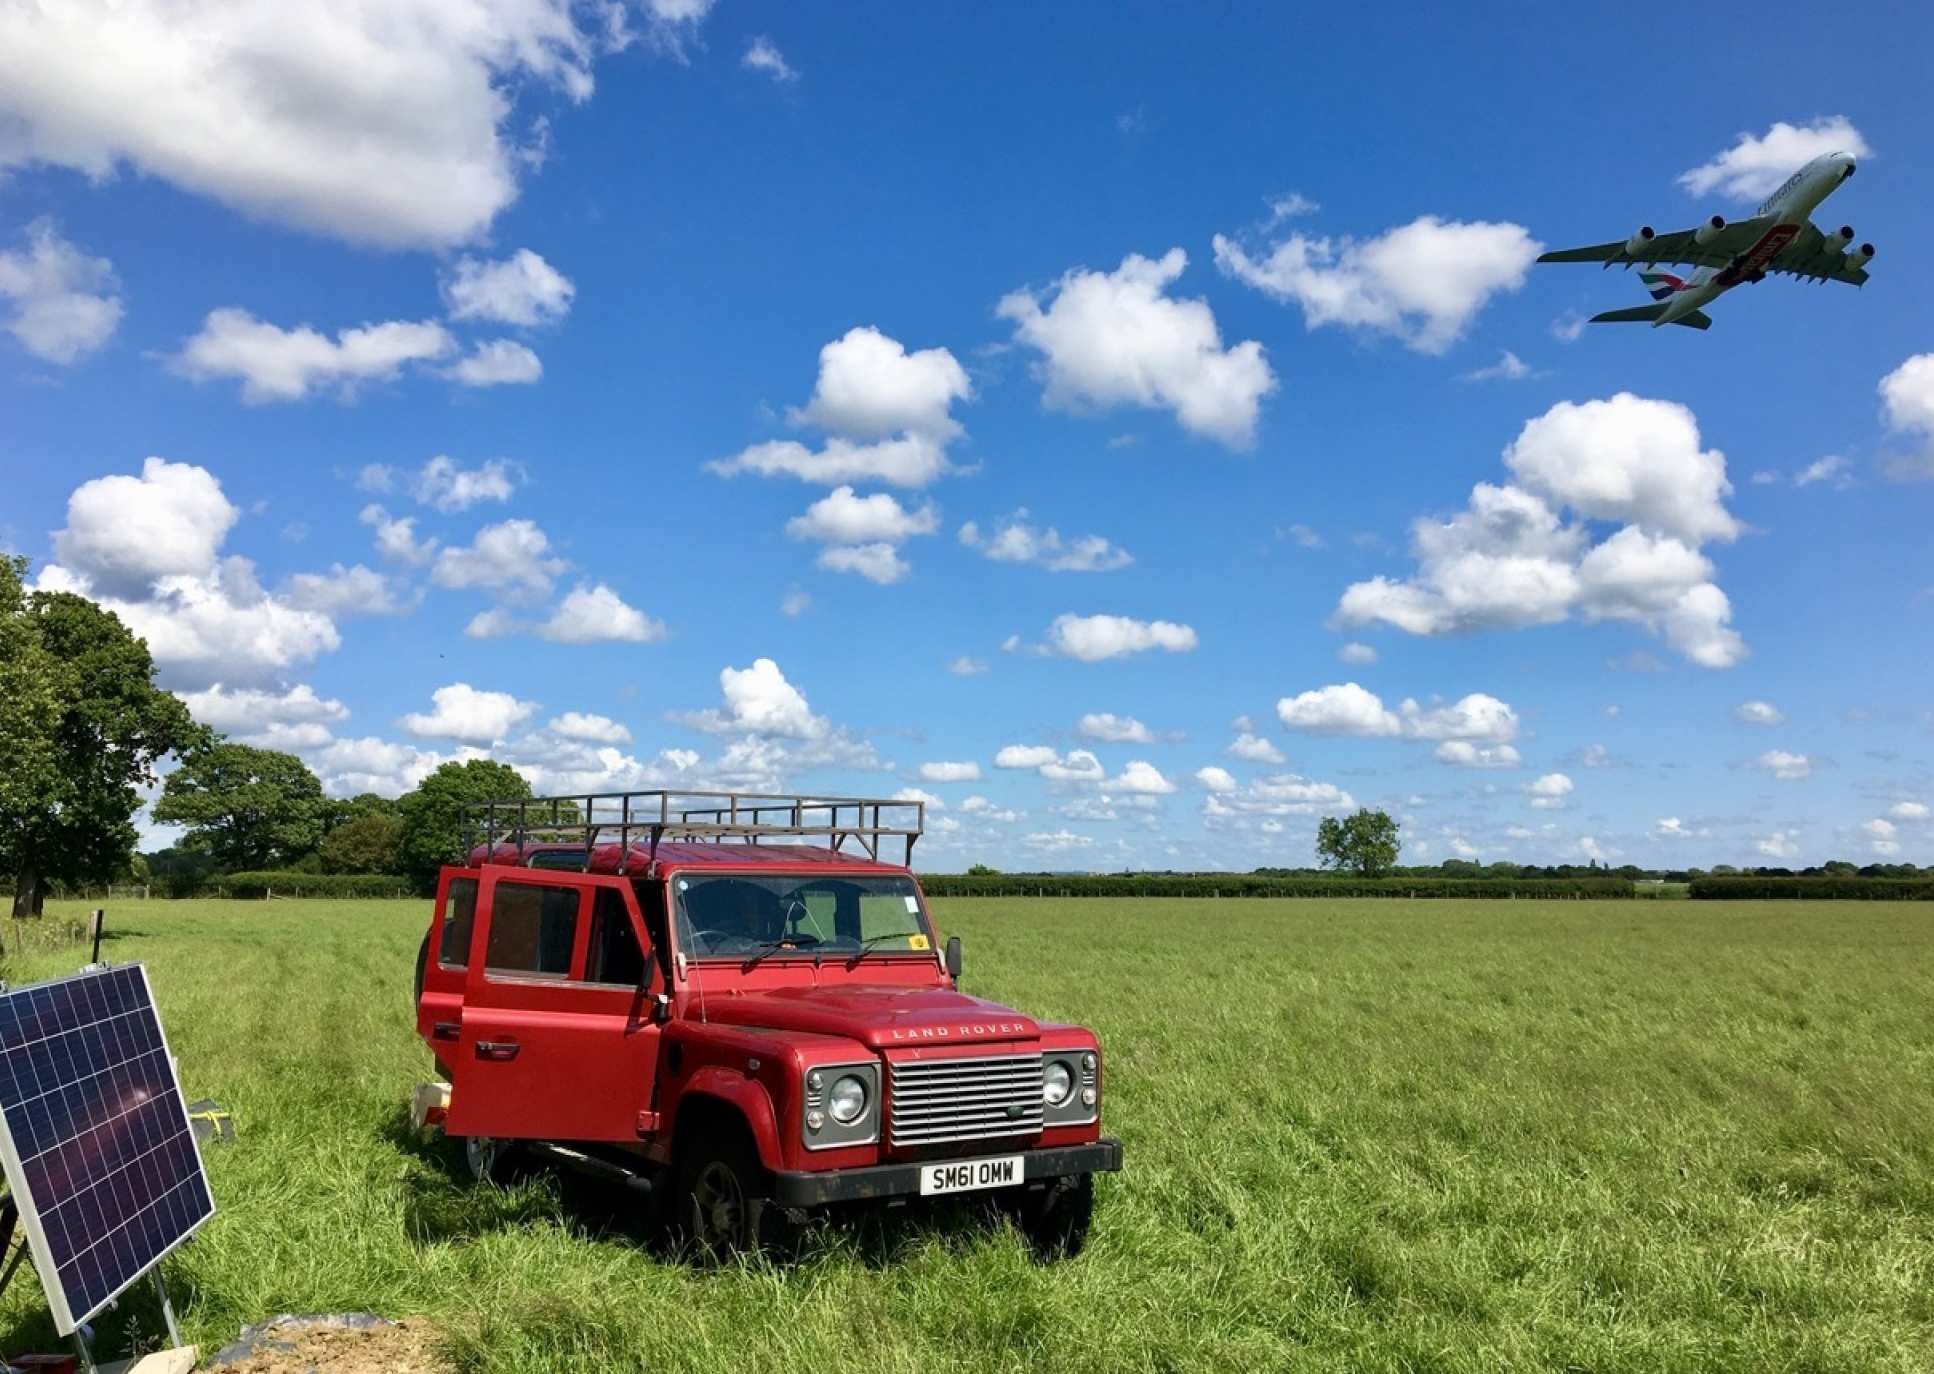 Photo showing car in field in foreground and plane taking off in background